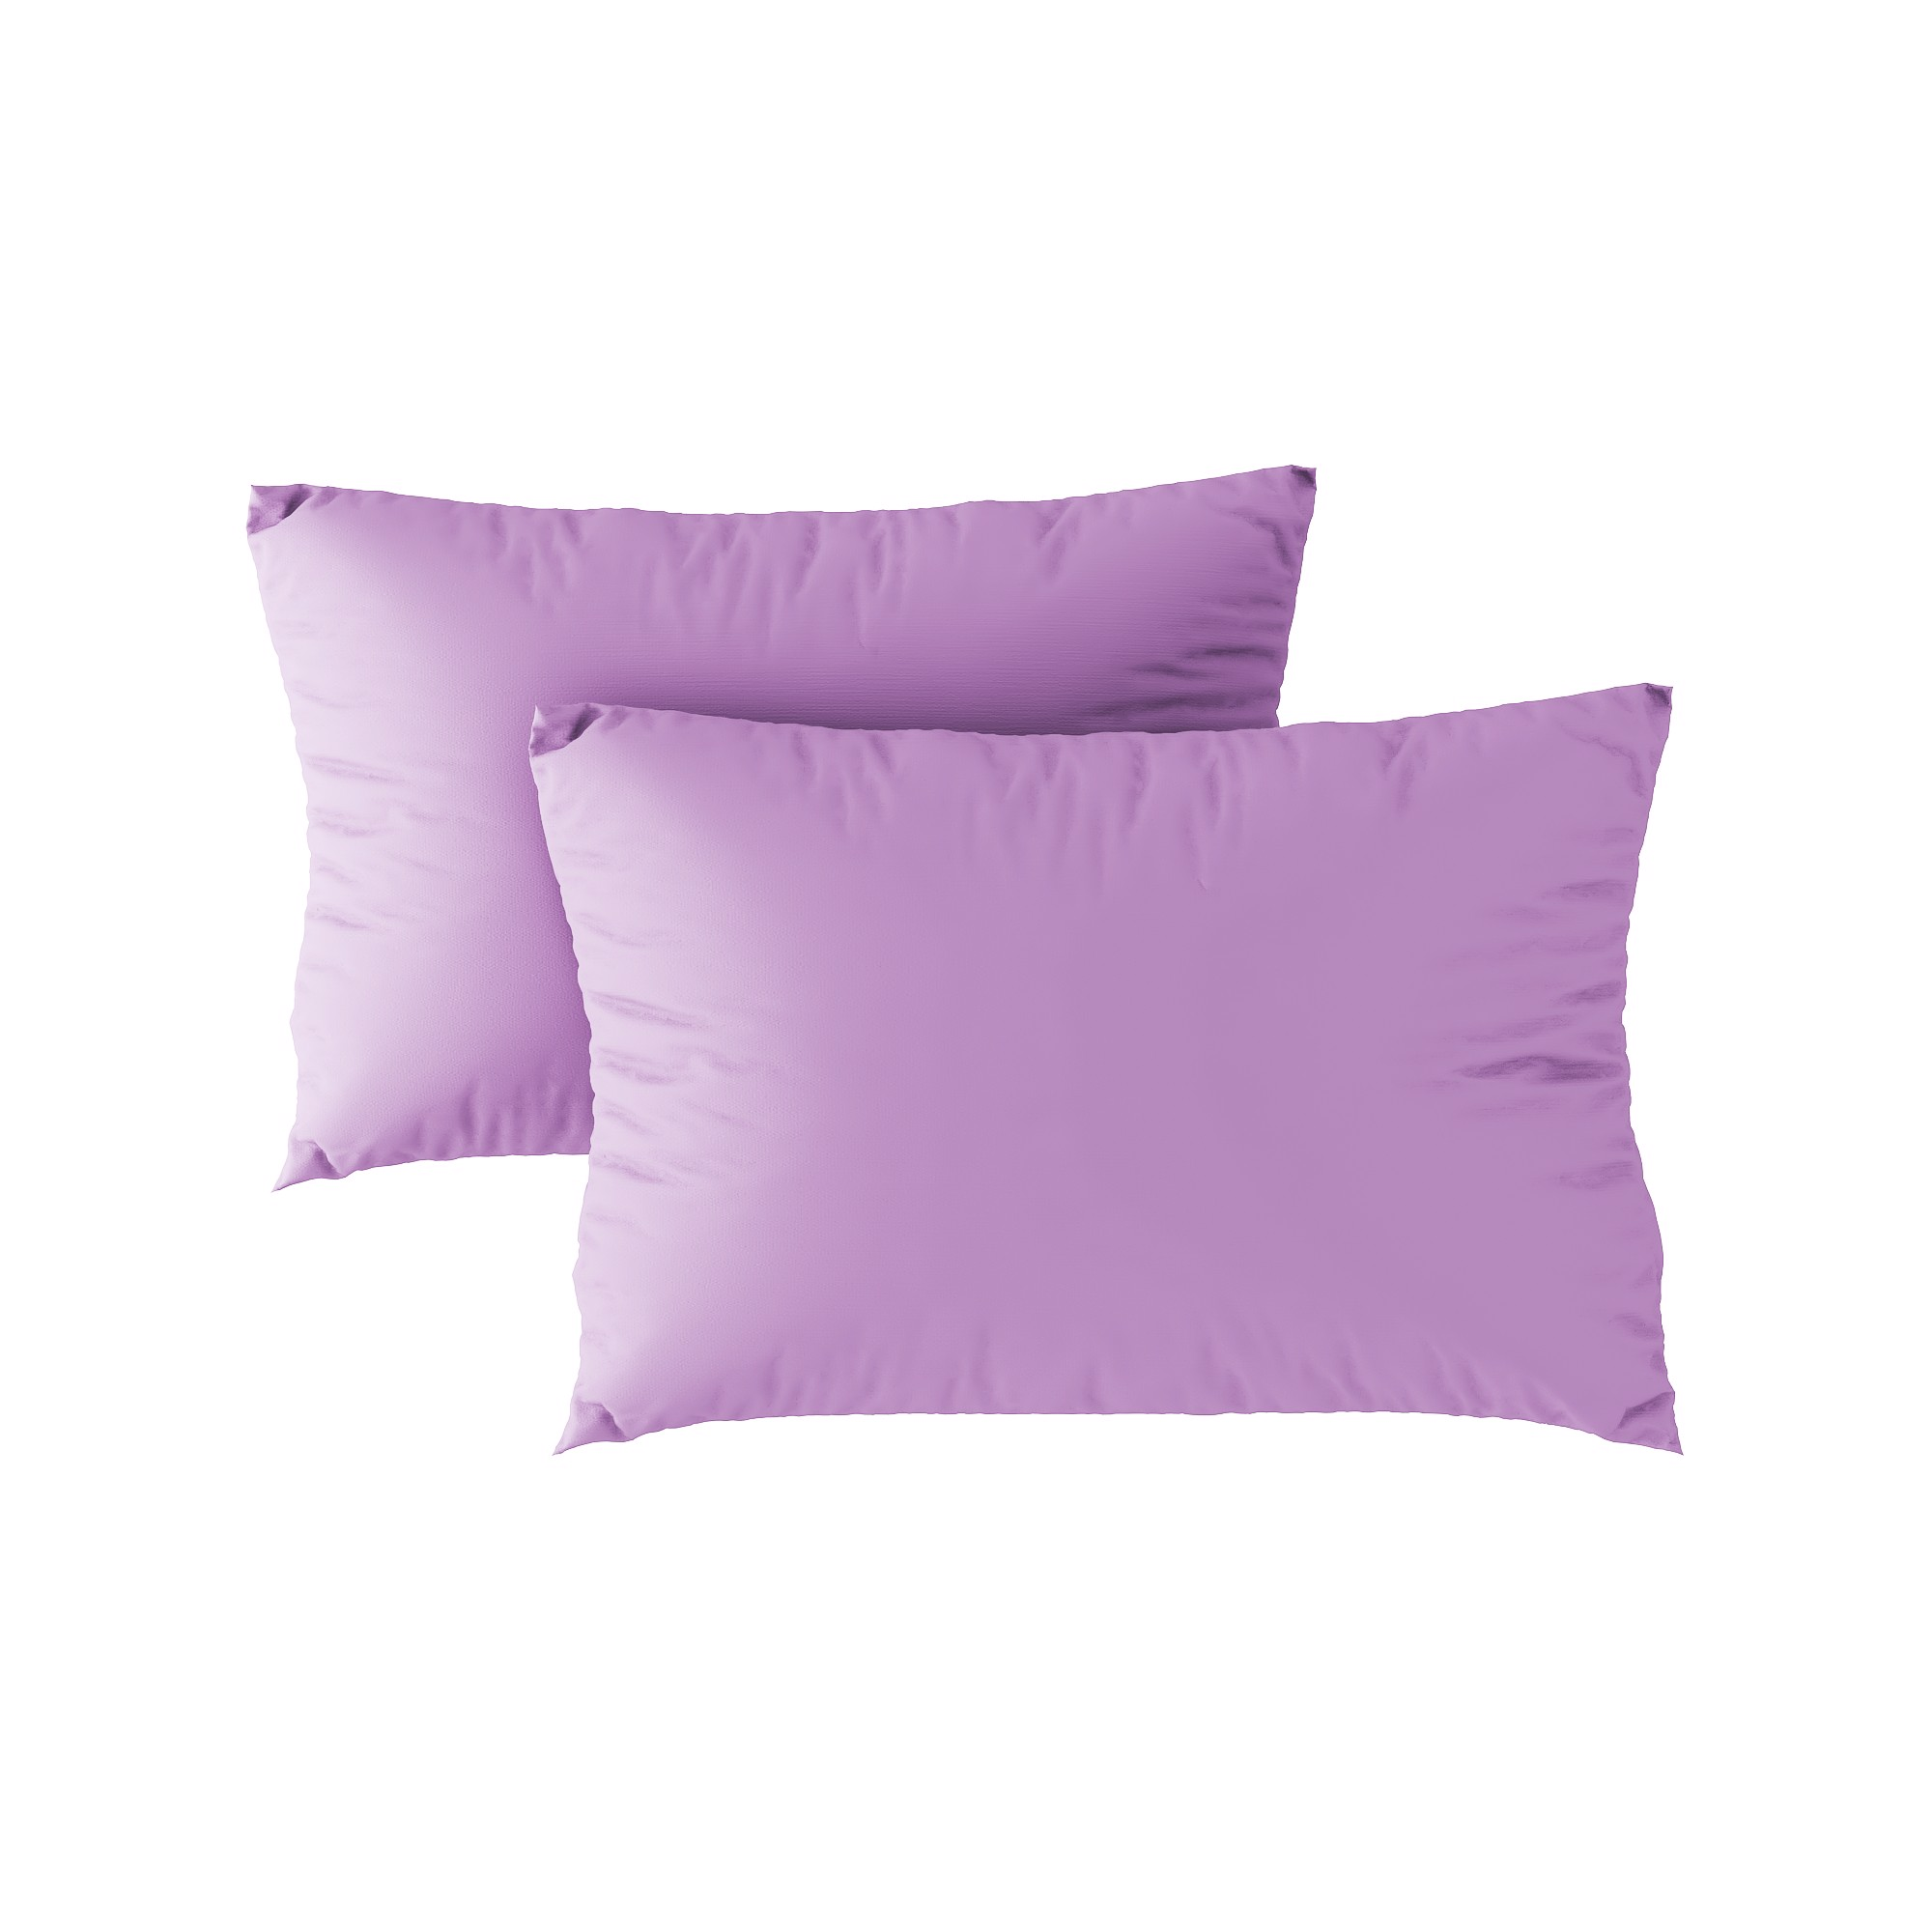 Standard pillow case 10 Light purple (2pcs)